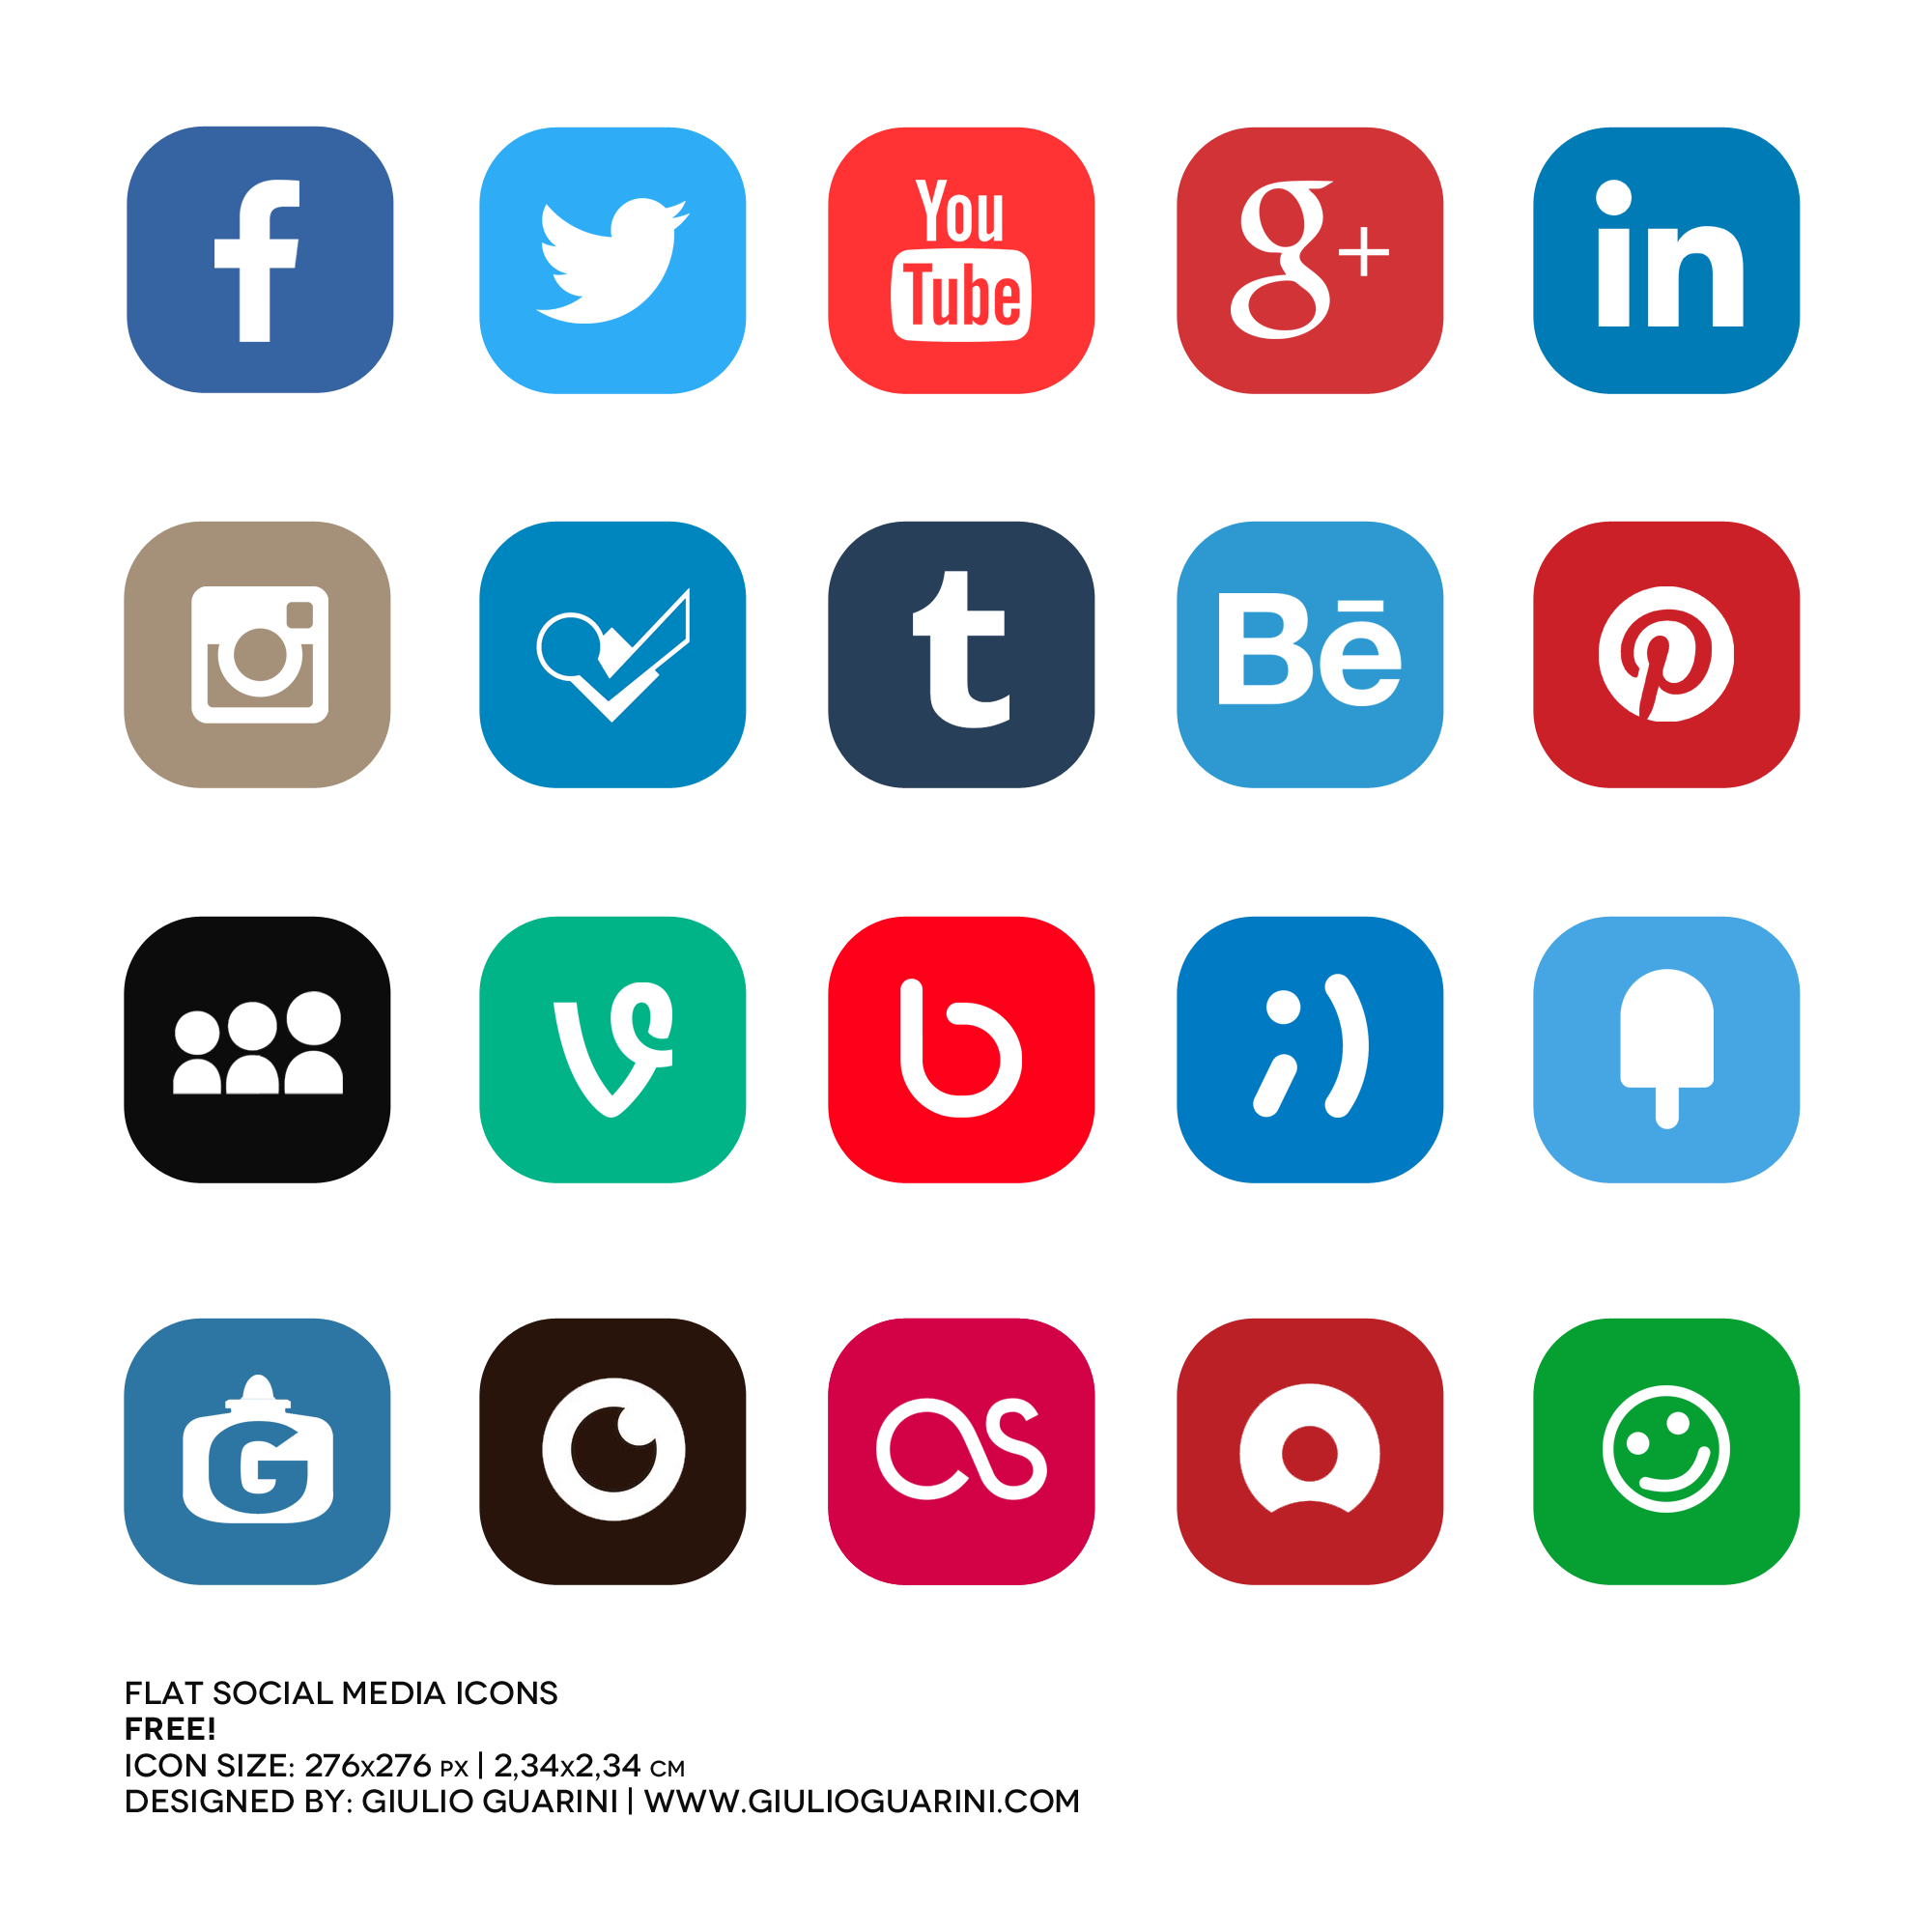 Download Media Icons Computer Advertising Social Free.